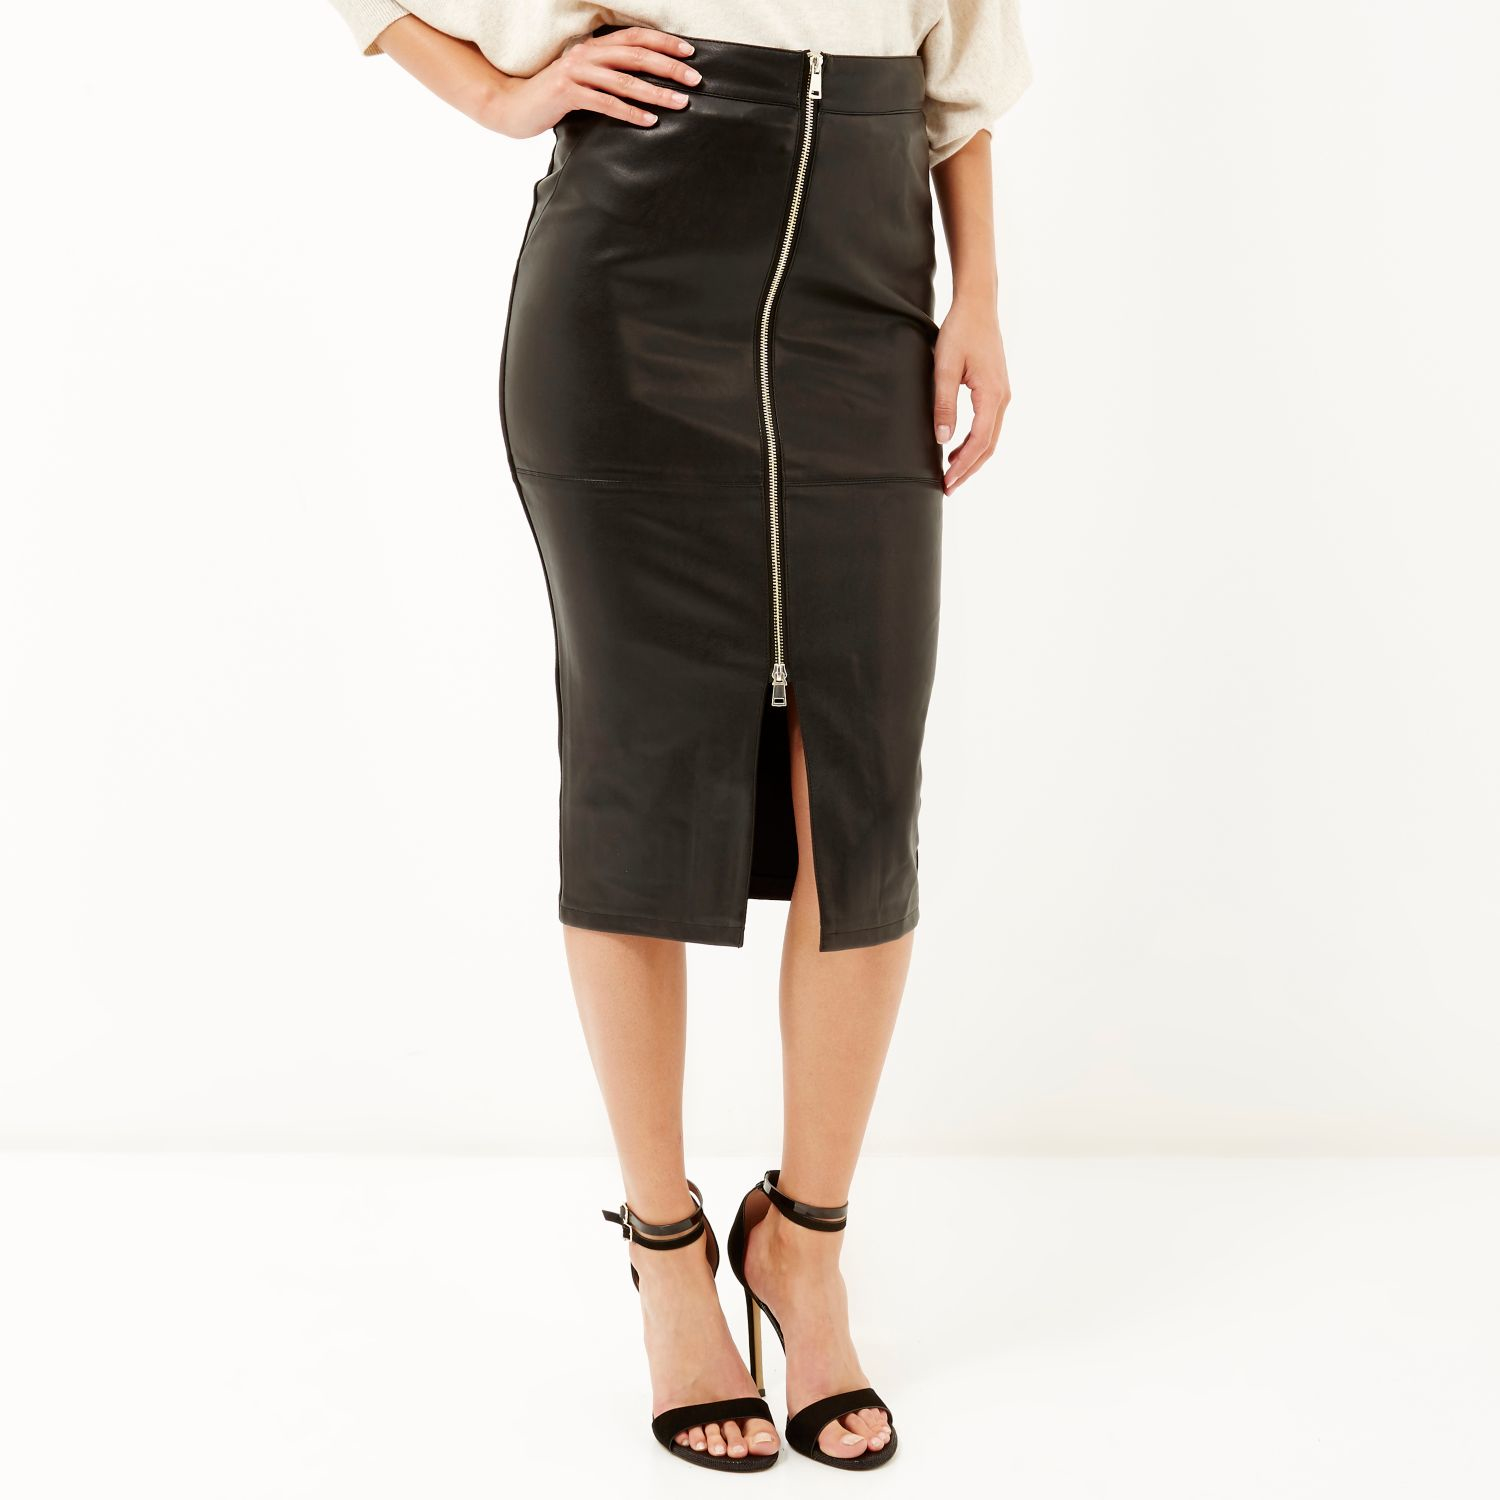 River island Black Leather-look Zip-up Pencil Skirt in Black | Lyst